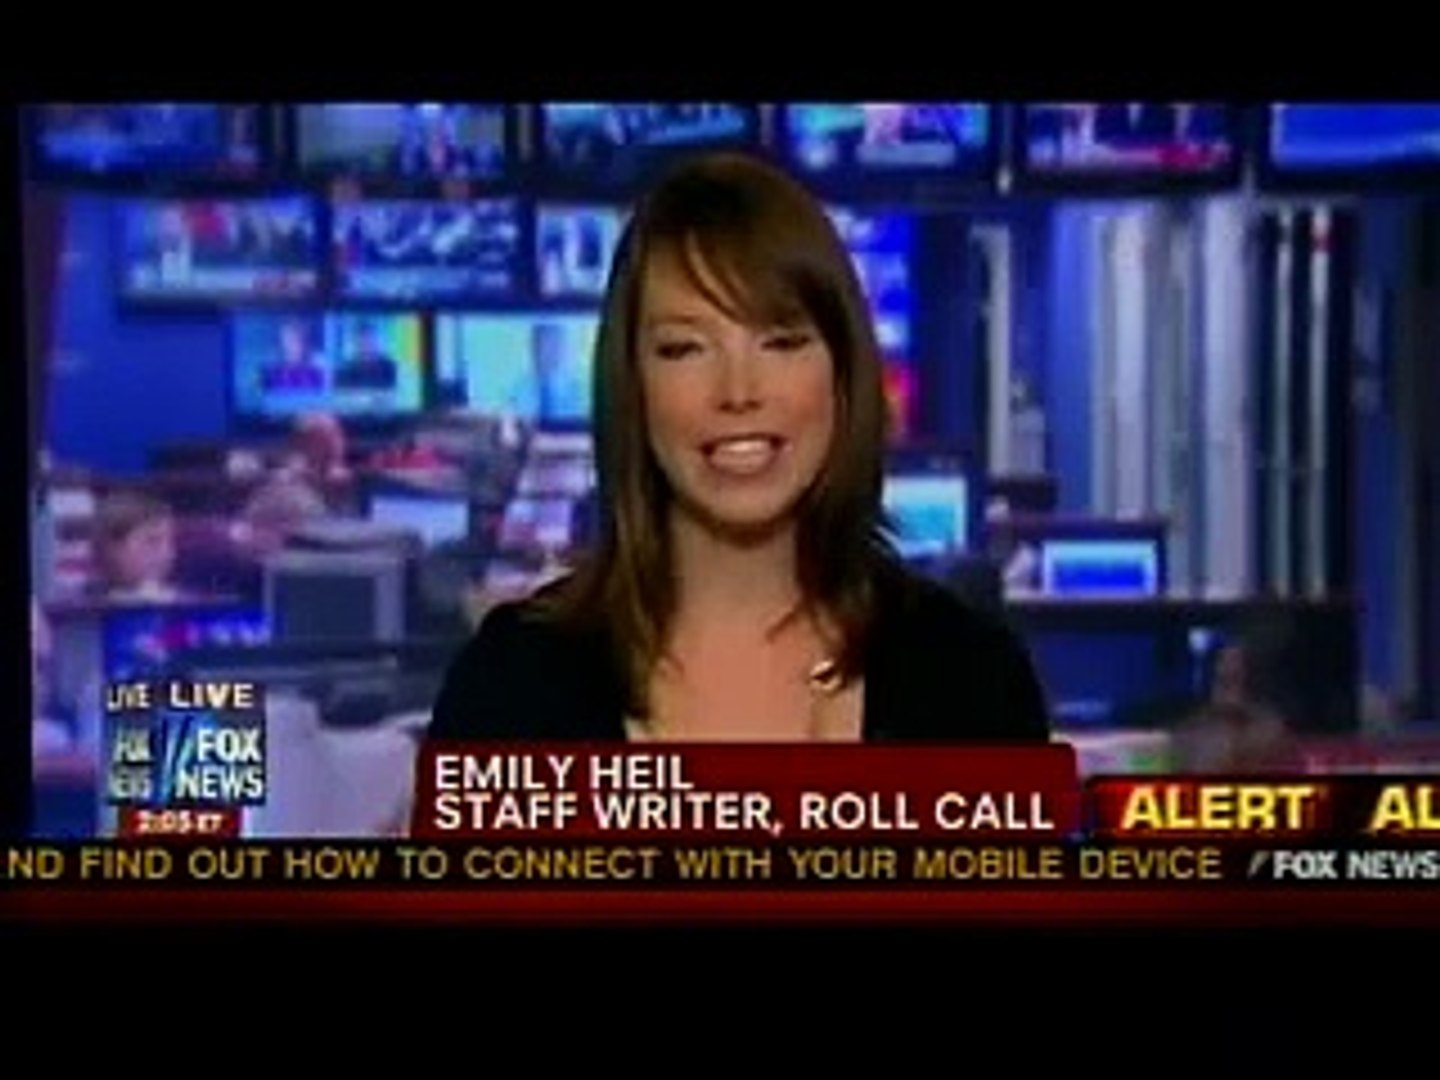 Roll Call's Emily Heil on Fox News Channel August 13, 2011